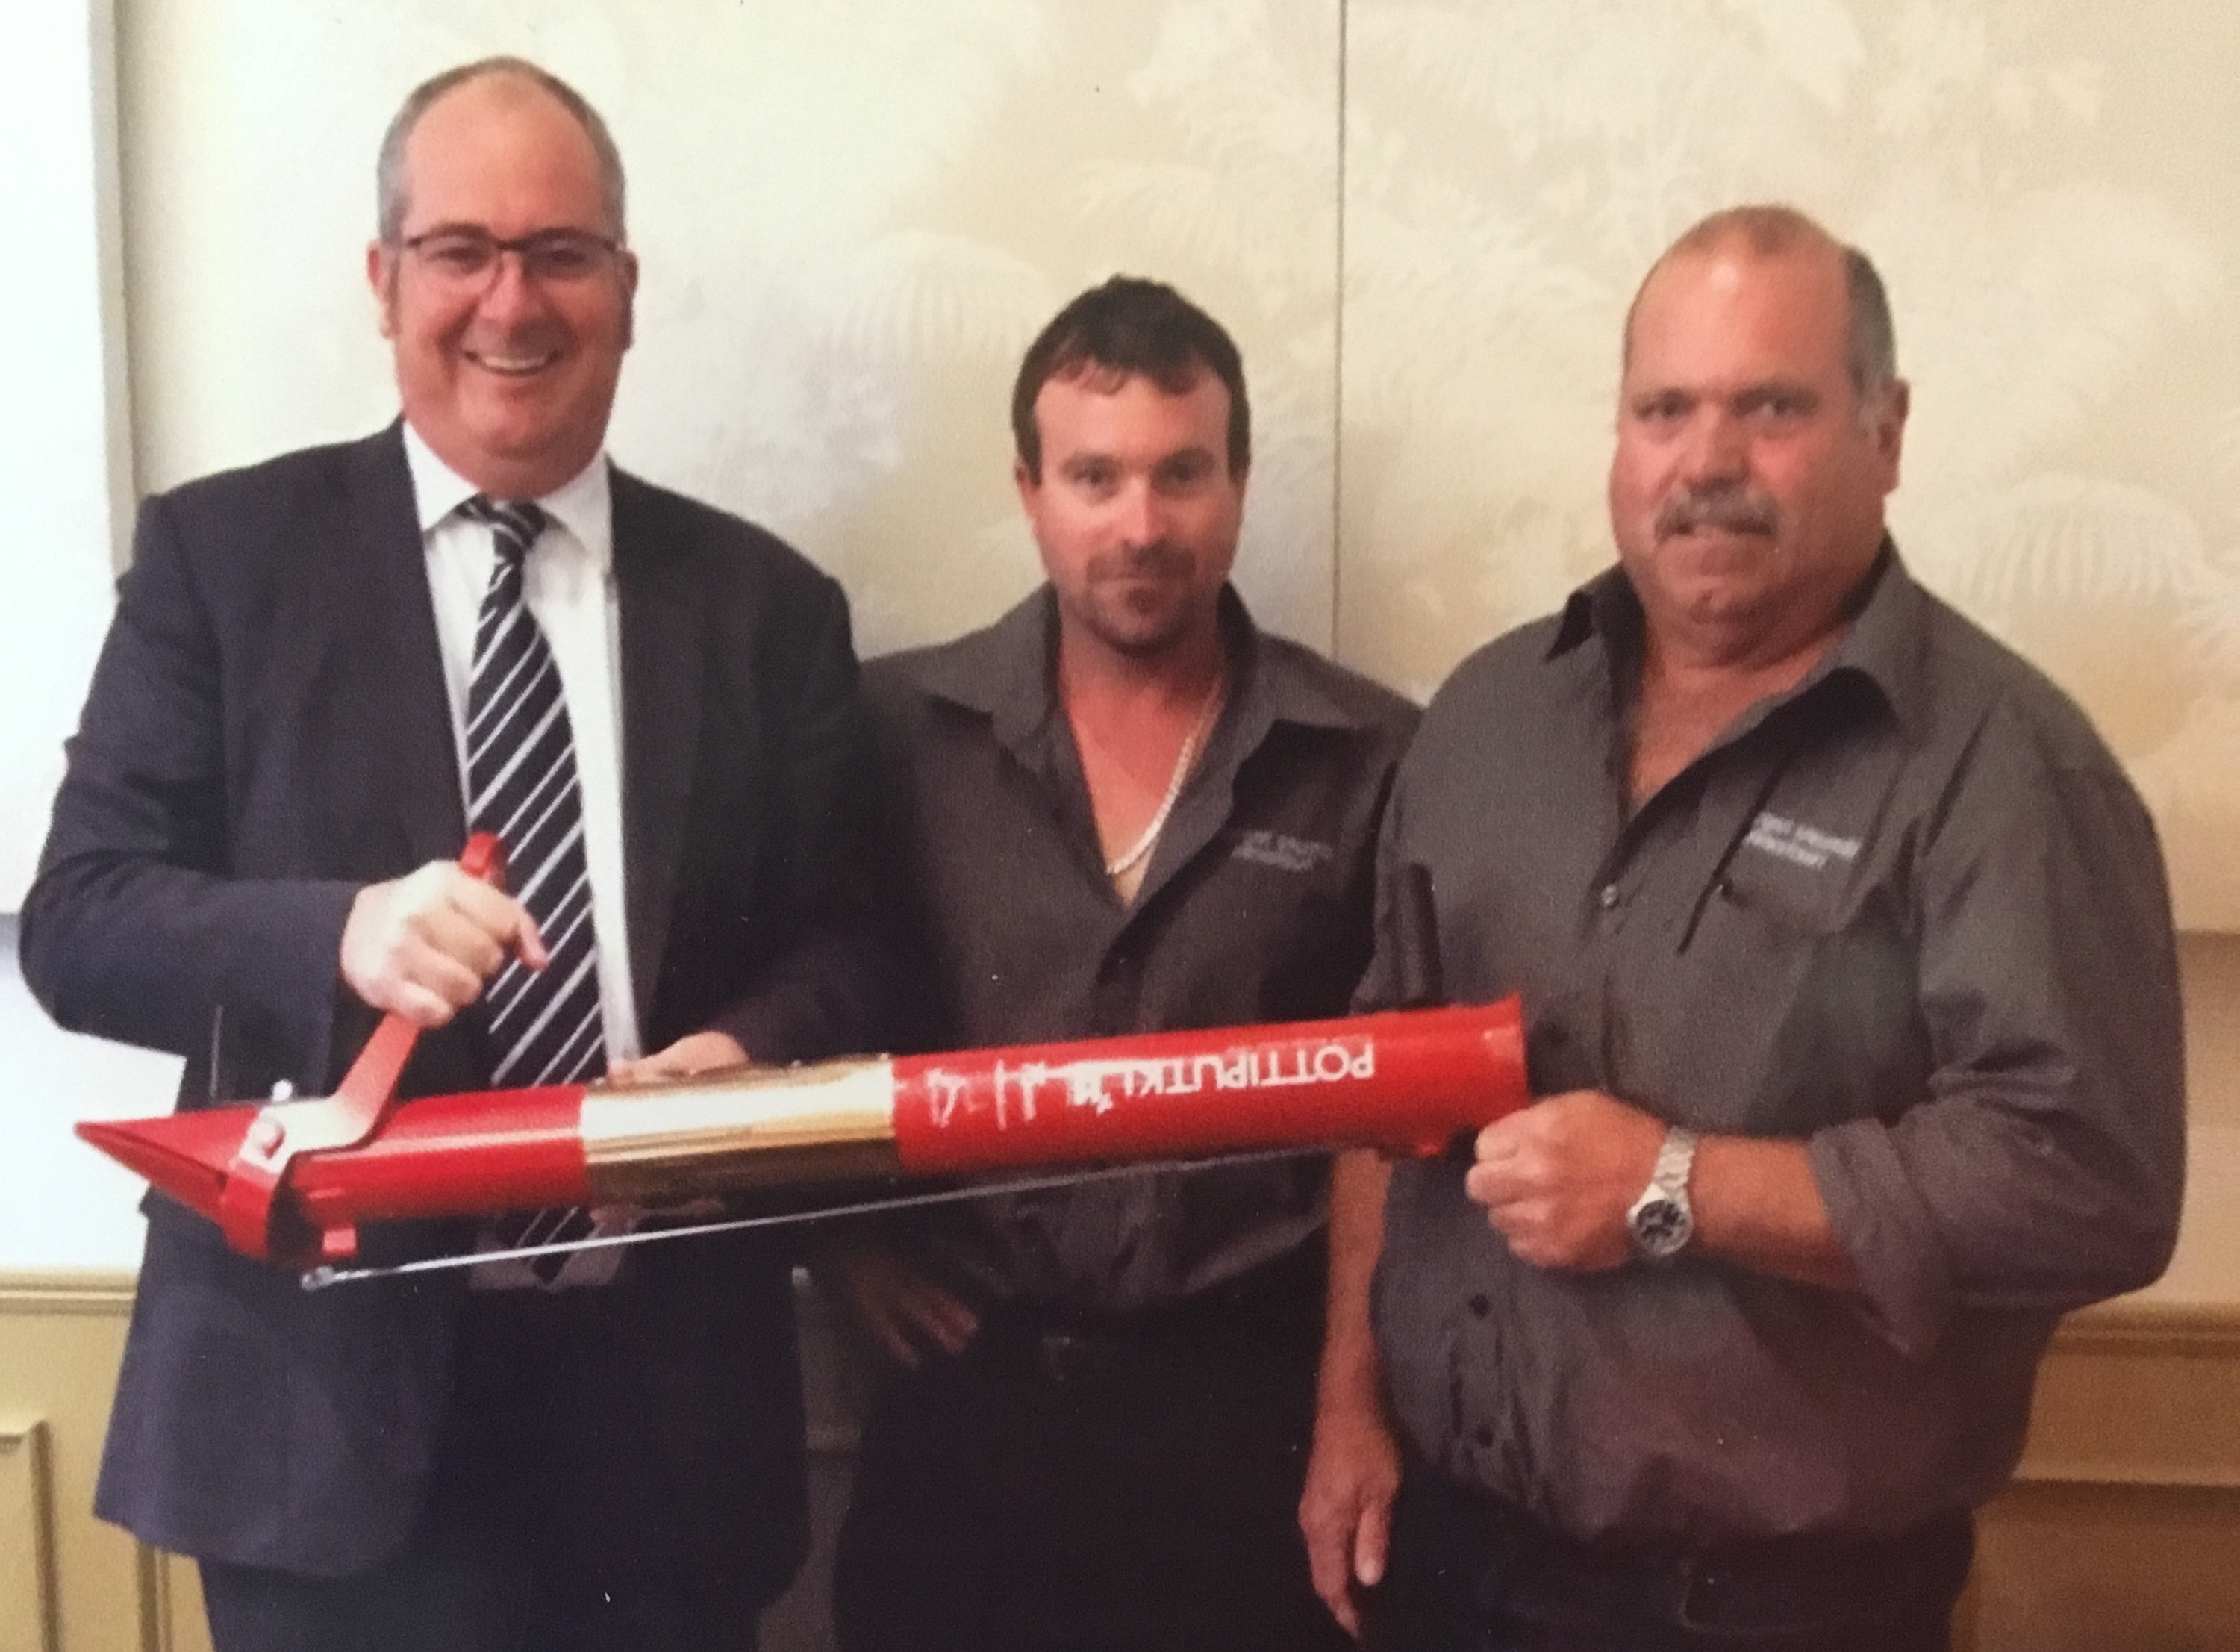 Minister for Agriculture, Food, Fisheries, Forests, Tourism, Racing and Sport and Recreation with the Owners of Morgan Sawmill, Luke and Ed Morgan